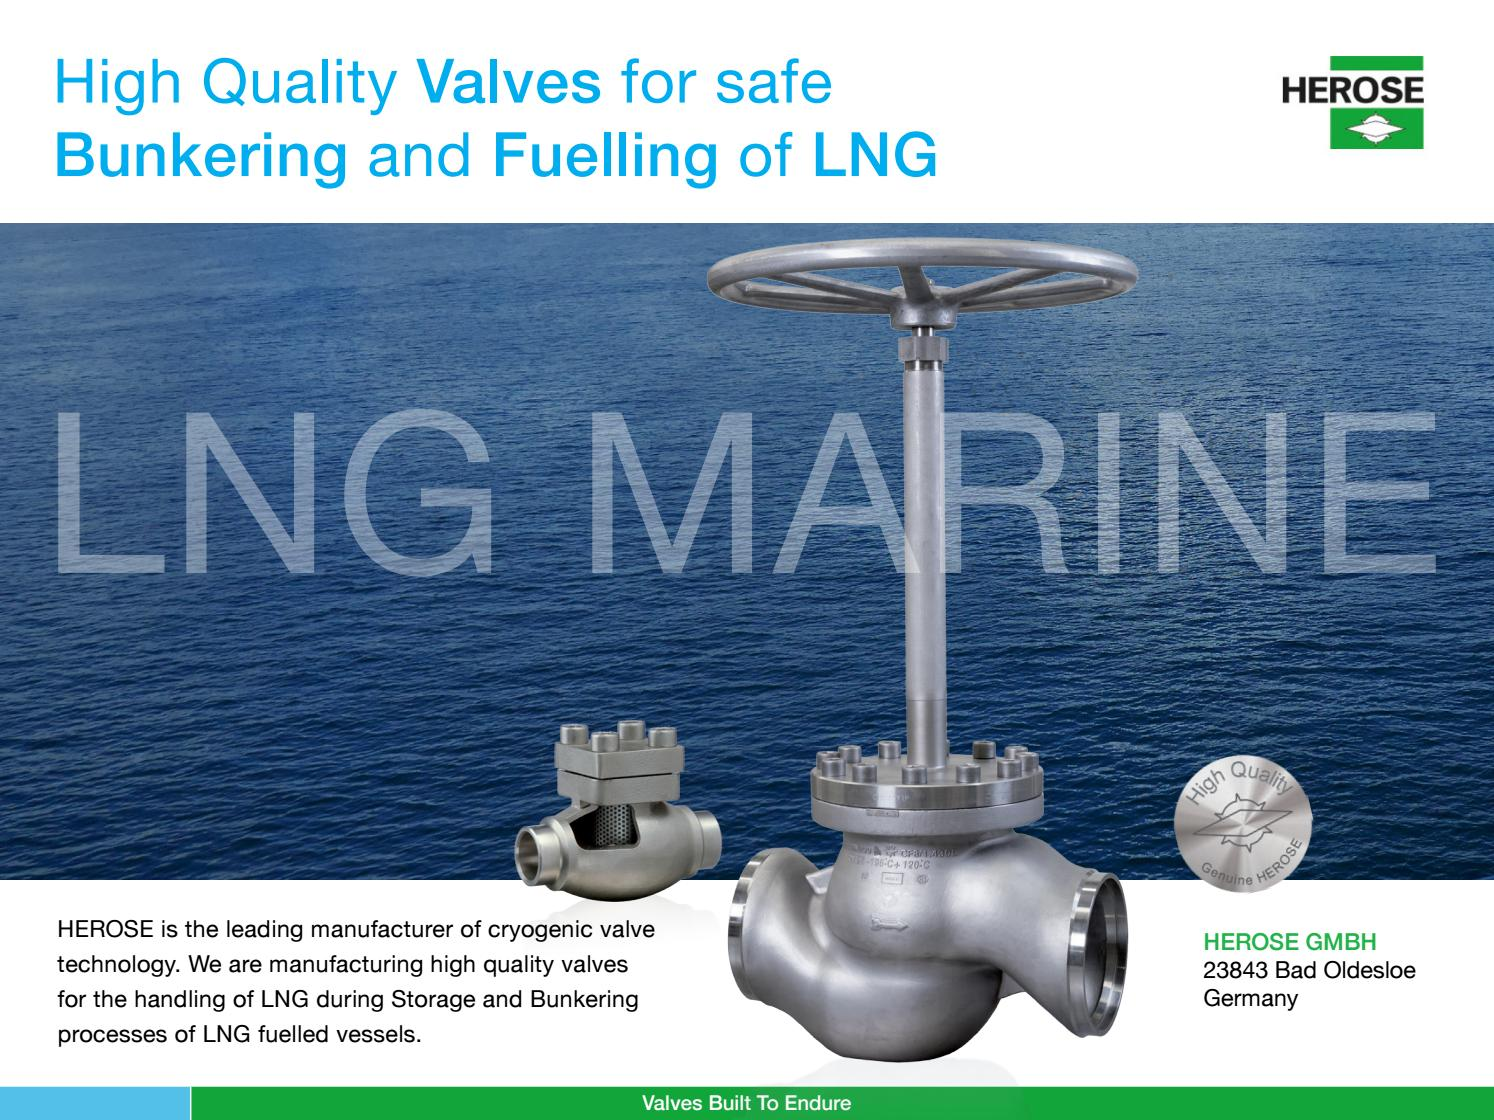 LNG World Shipping January/February 2019 by